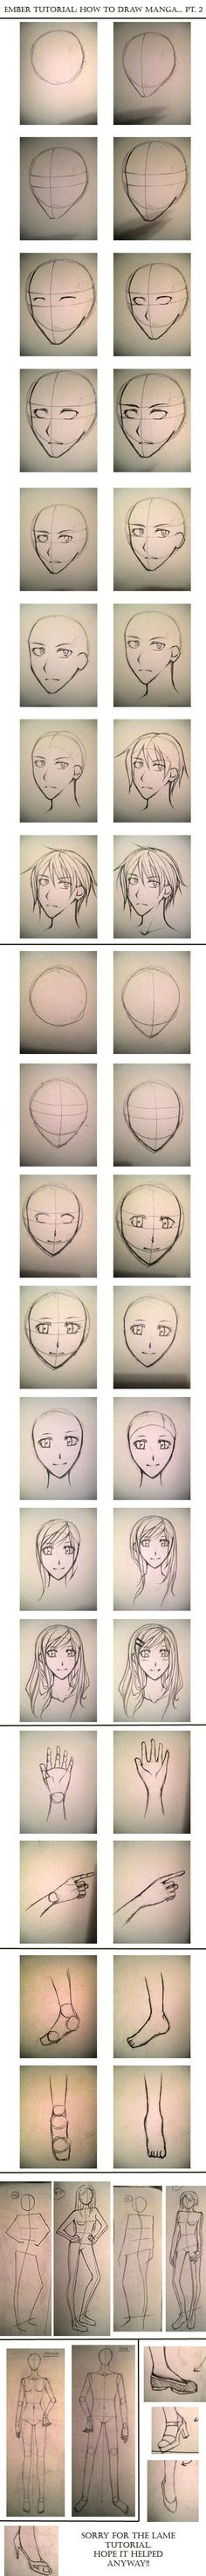 un tip para los amante del dibujo...how to draw a basic anime girl and anime guy tutorial.